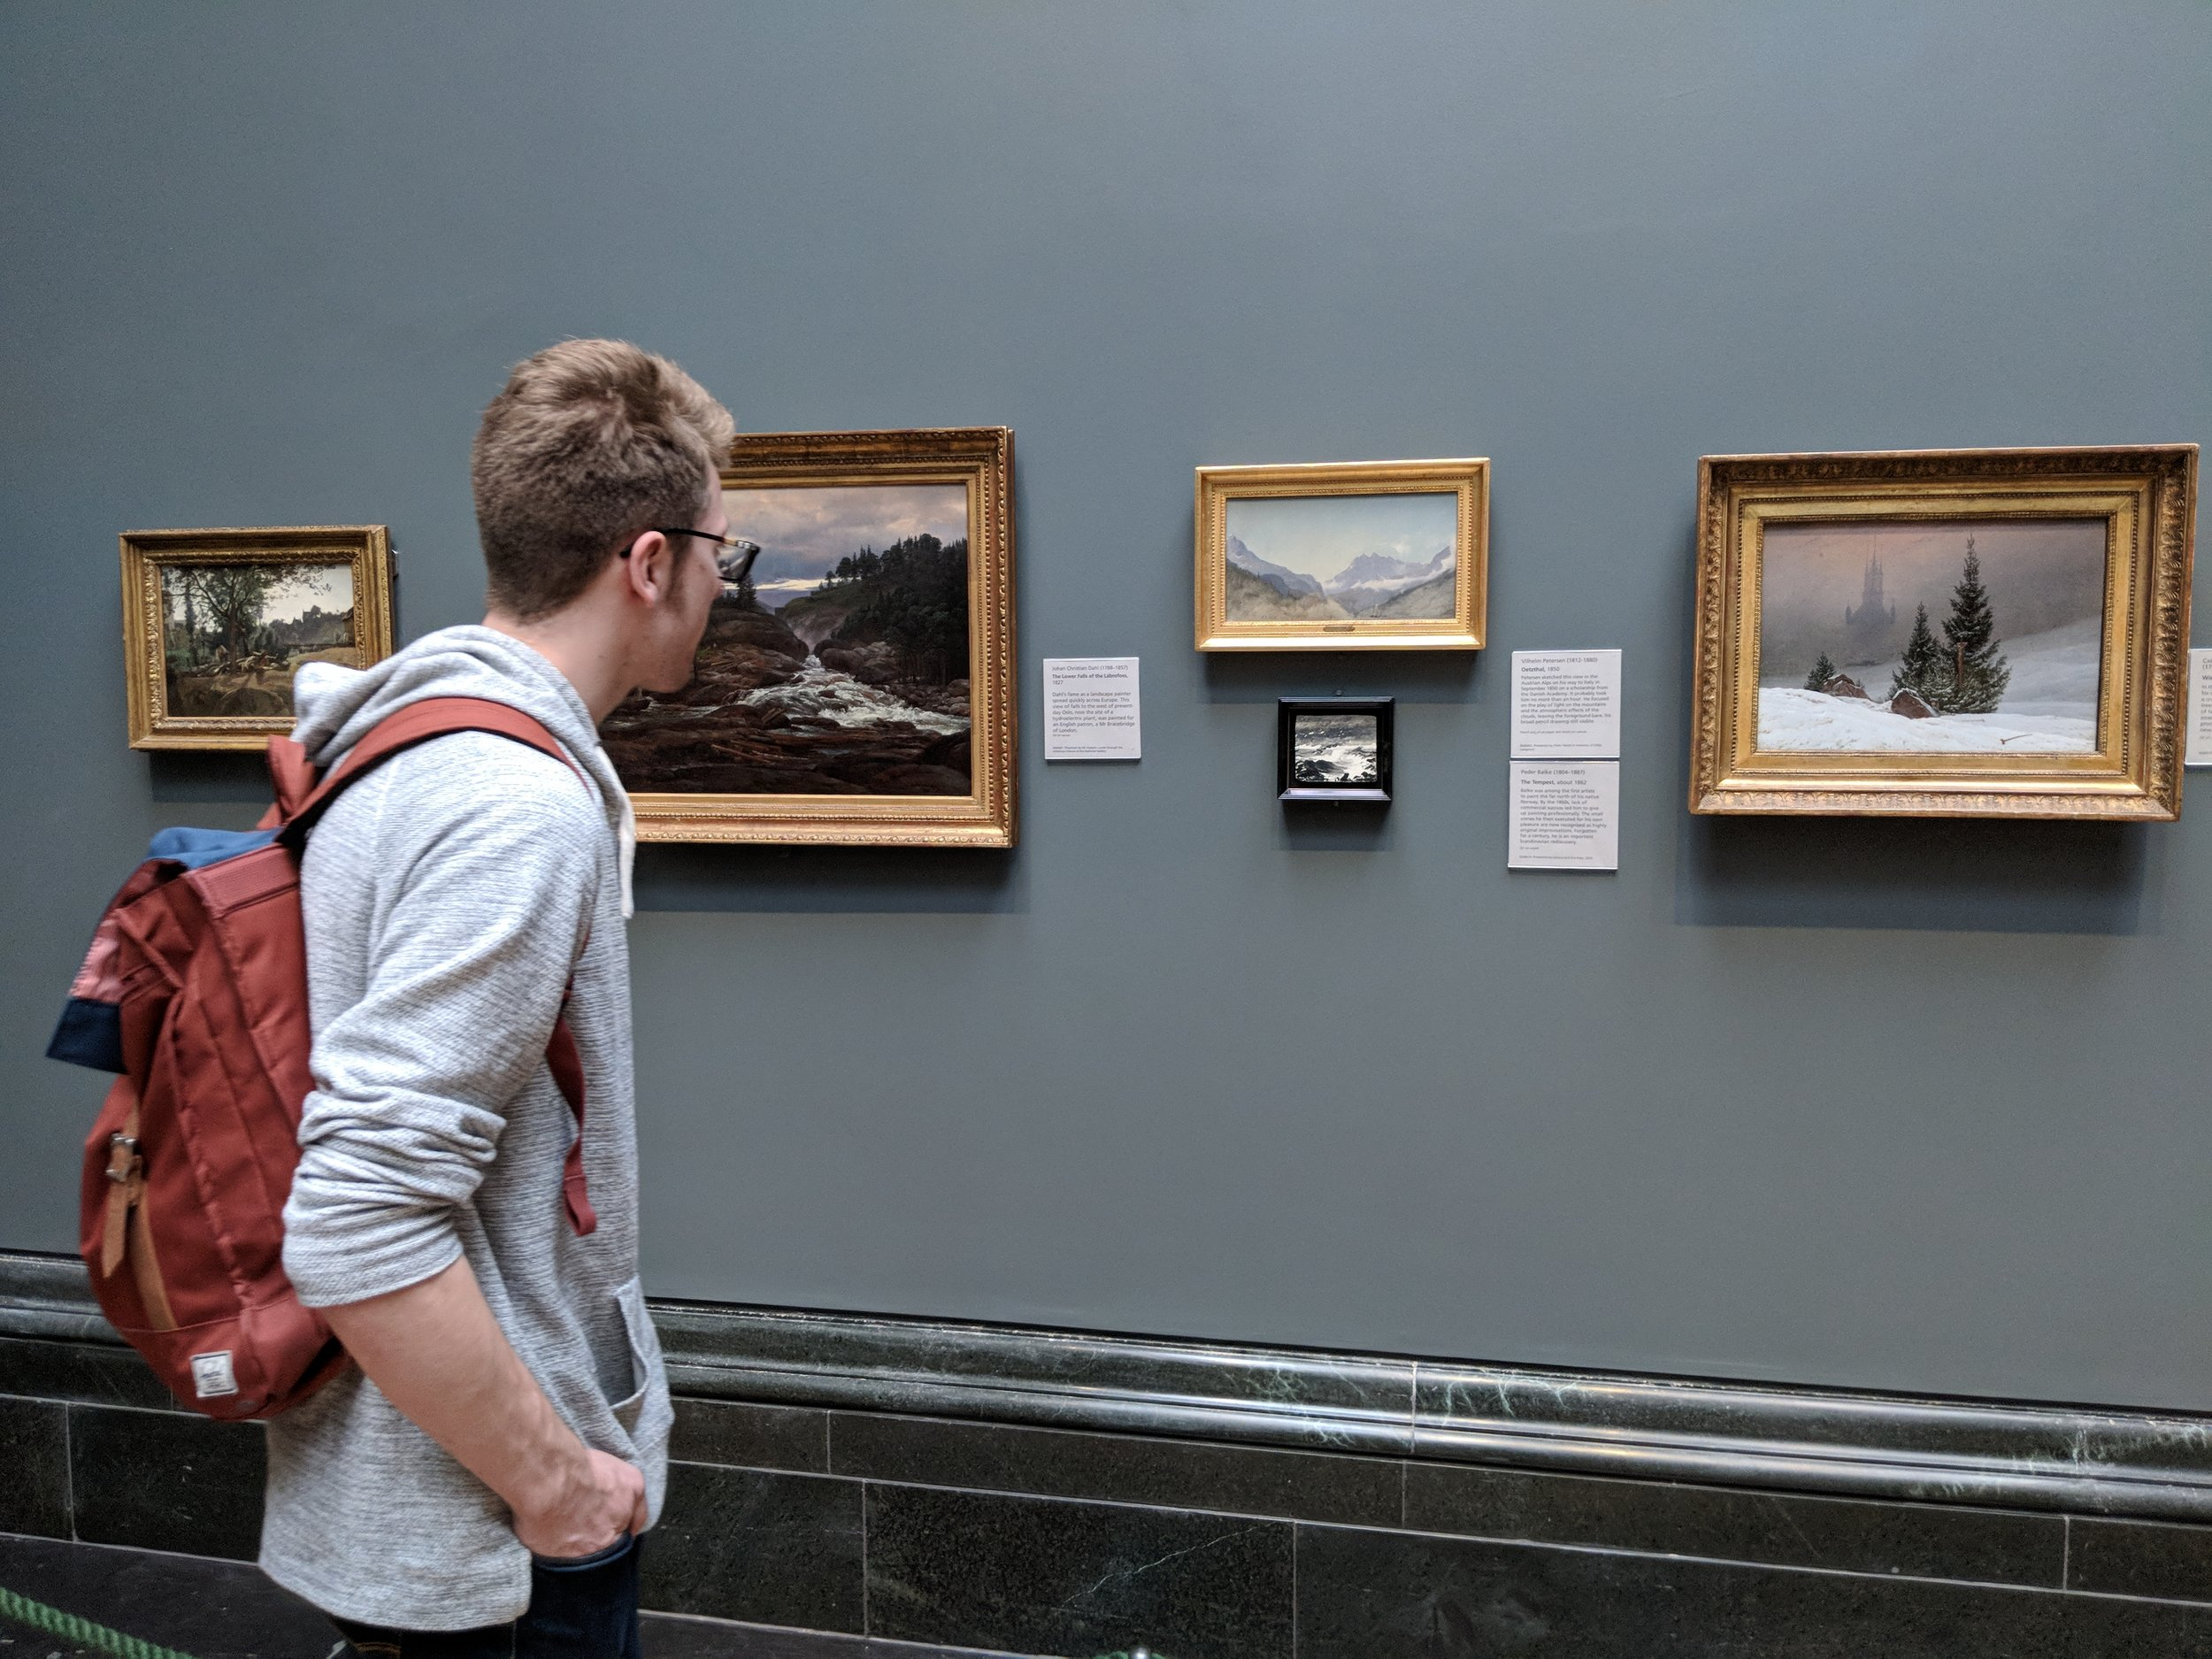 Meet field school blogger Reggie, looking here at landscape paintings at the National Gallery in London.